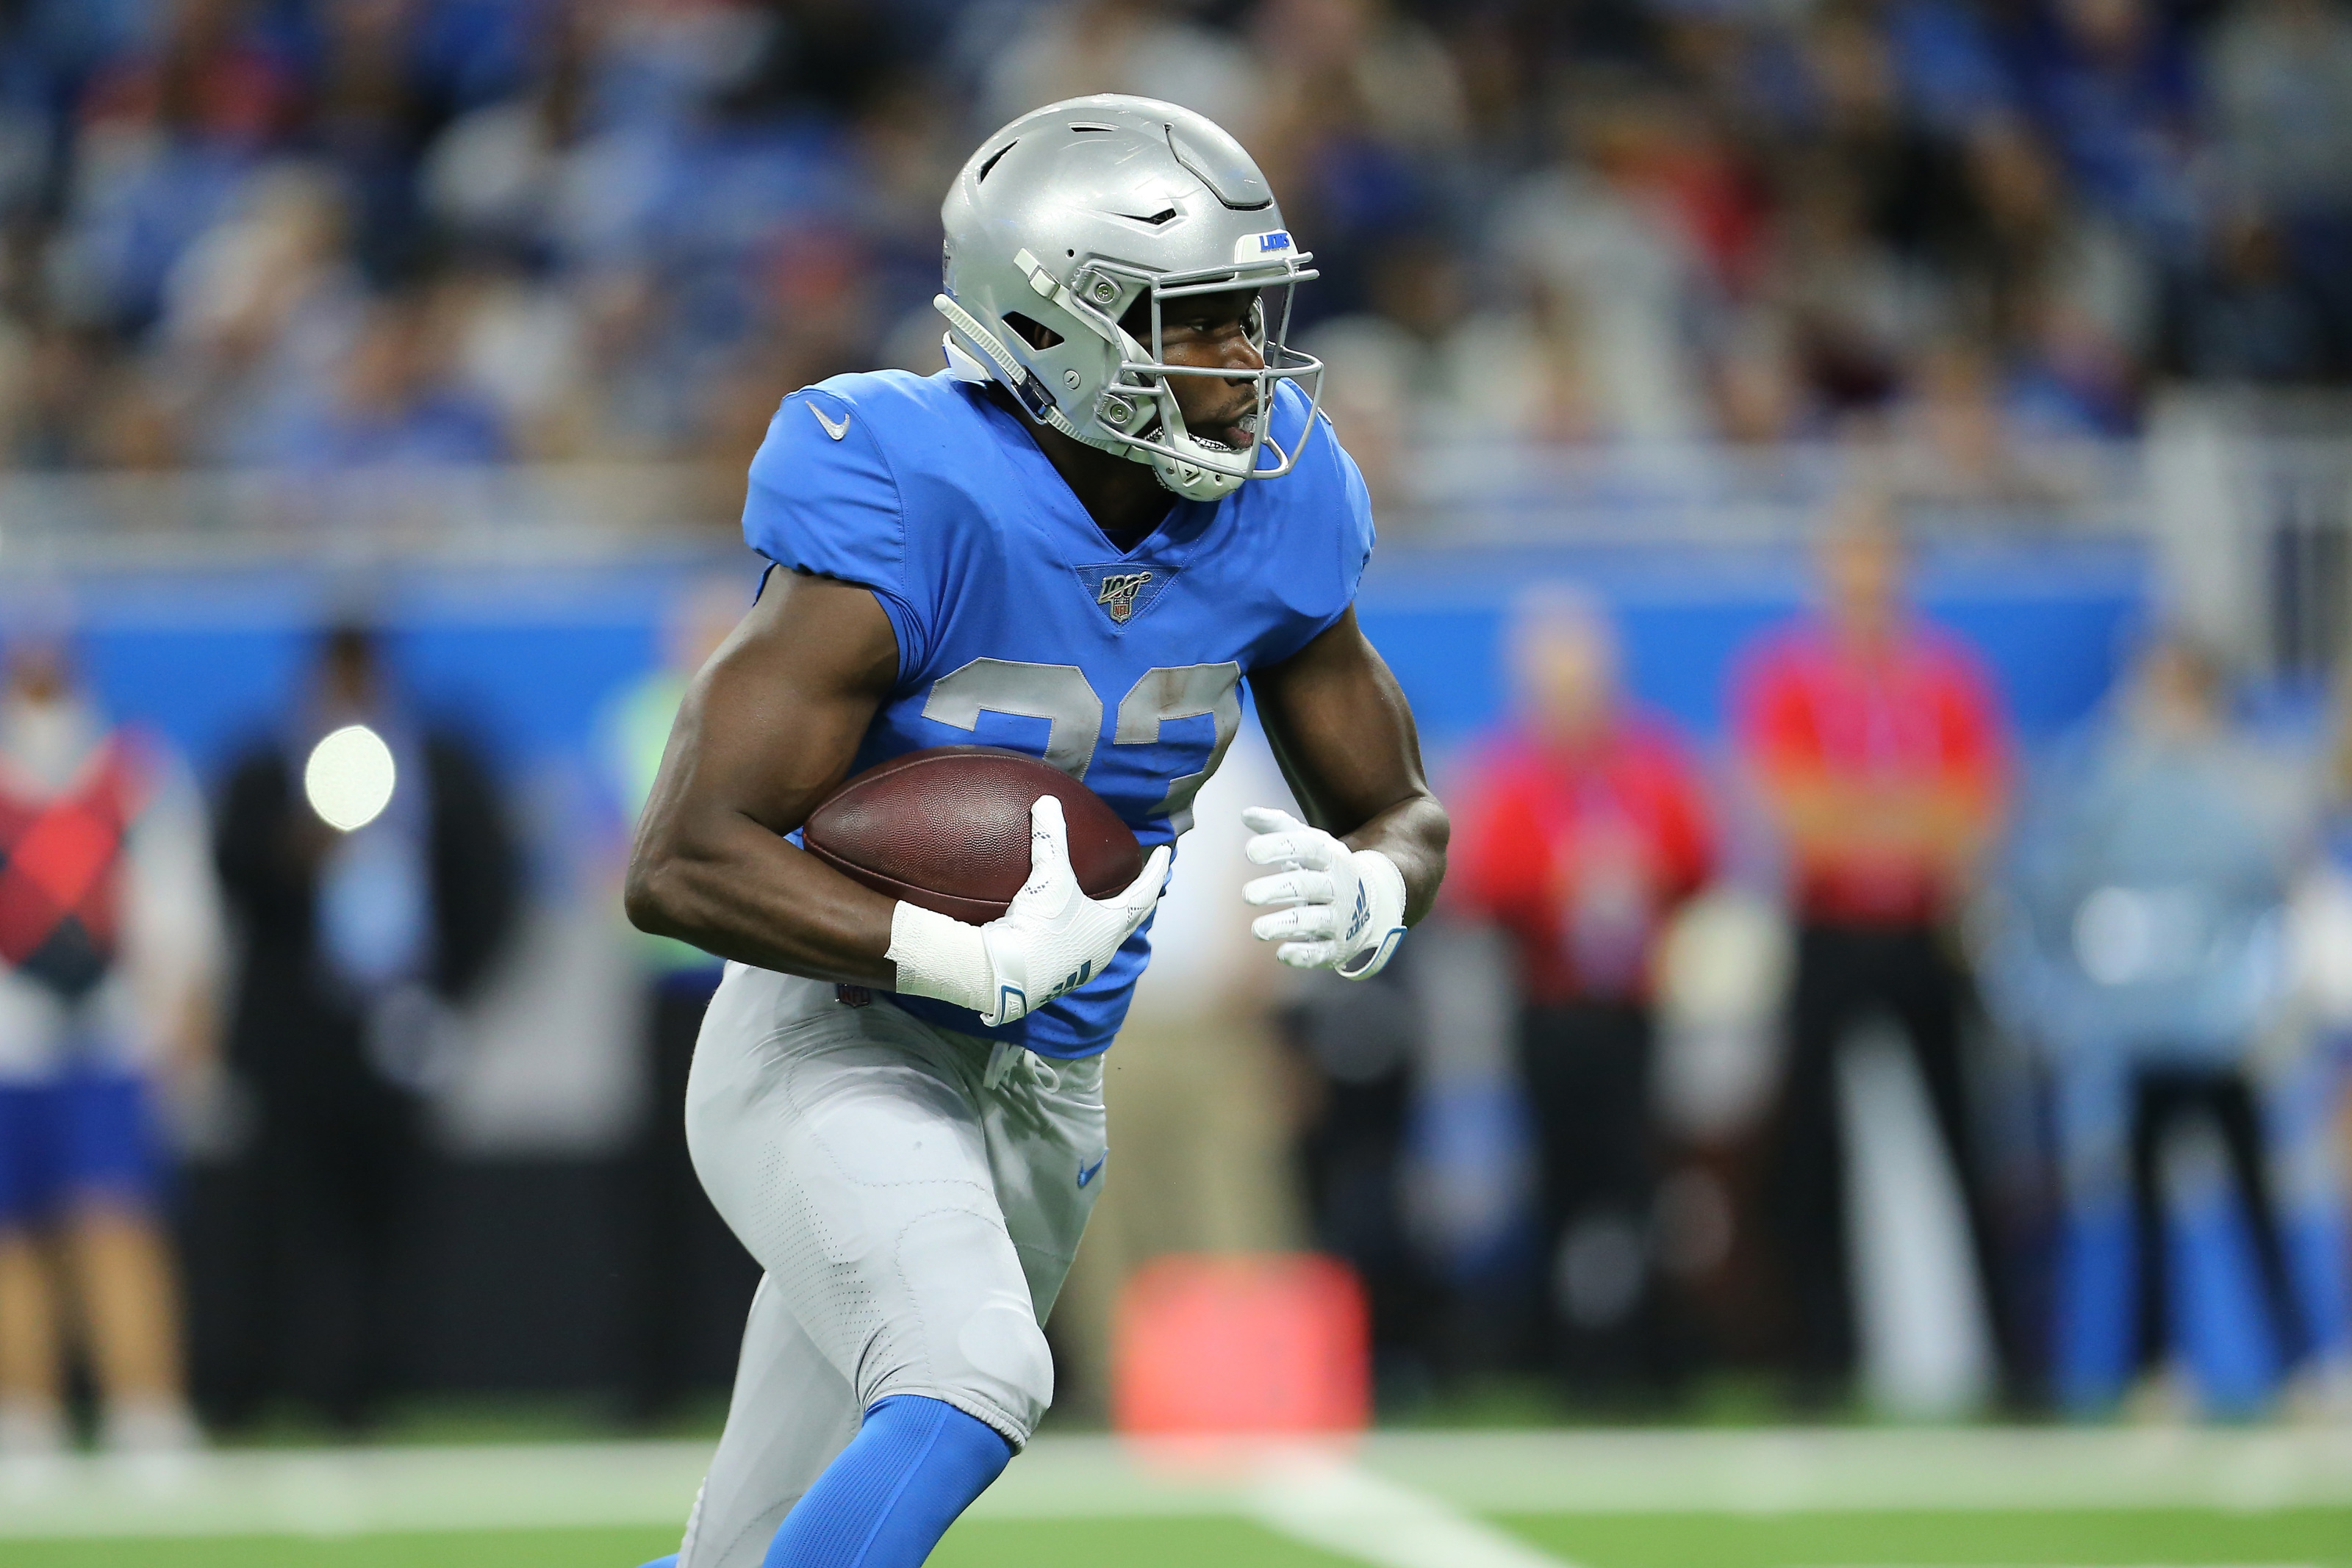 Detroit Lions: Running back position getting little attention this offseason